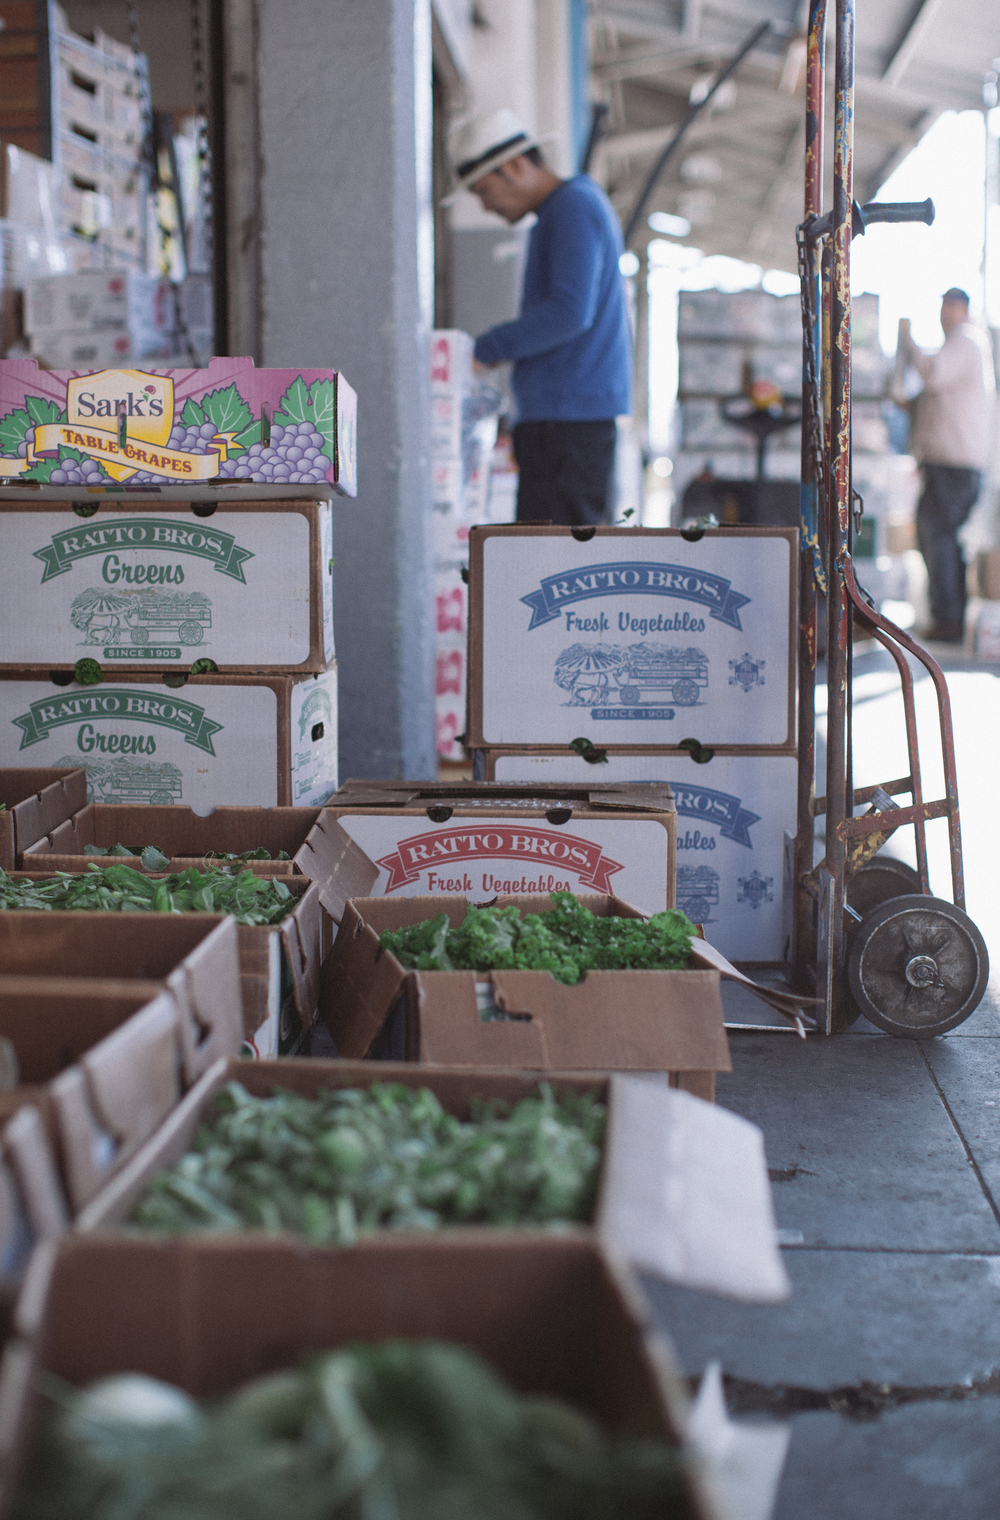 Warehouses are open, selling fresh produce each morning.